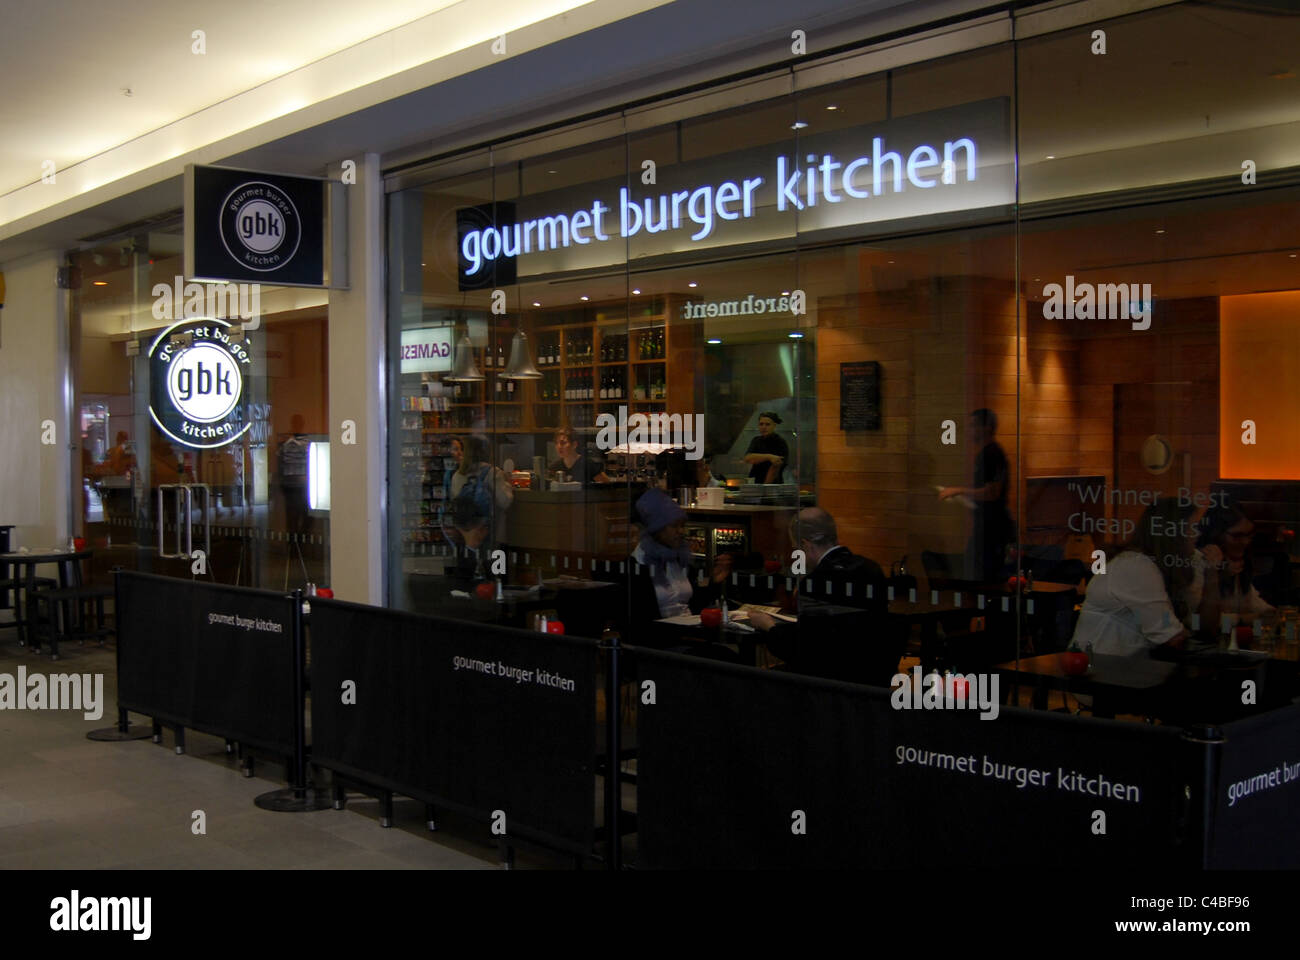 Restaurant Kitchen View a general view of the gourmet burger kitchen restaurant at the